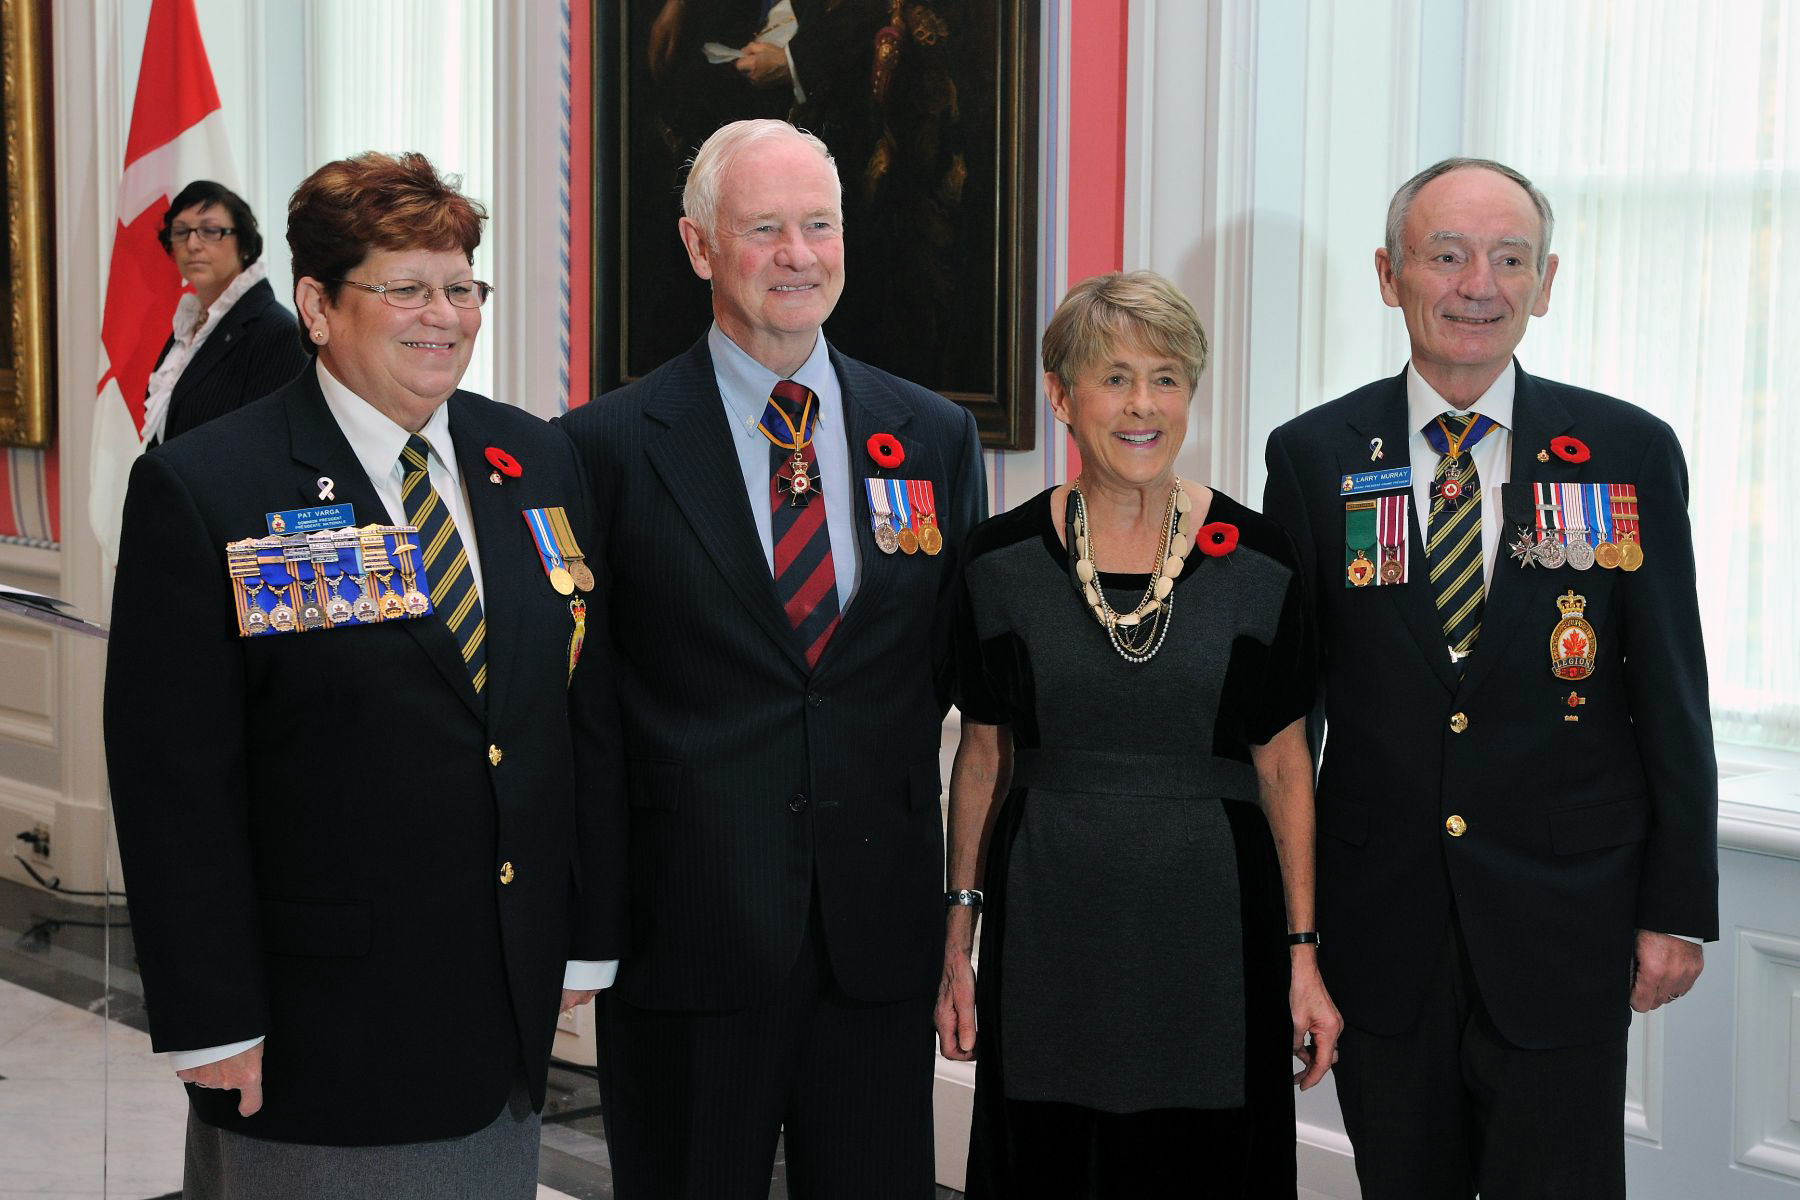 Their Excellencies are pictured with Patricia Varga, Dominion President of The Royal Canadian Legion (left), and Vice-Admiral (Retired) Larry Murray, grand president of The Royal Canadian Legion (right).